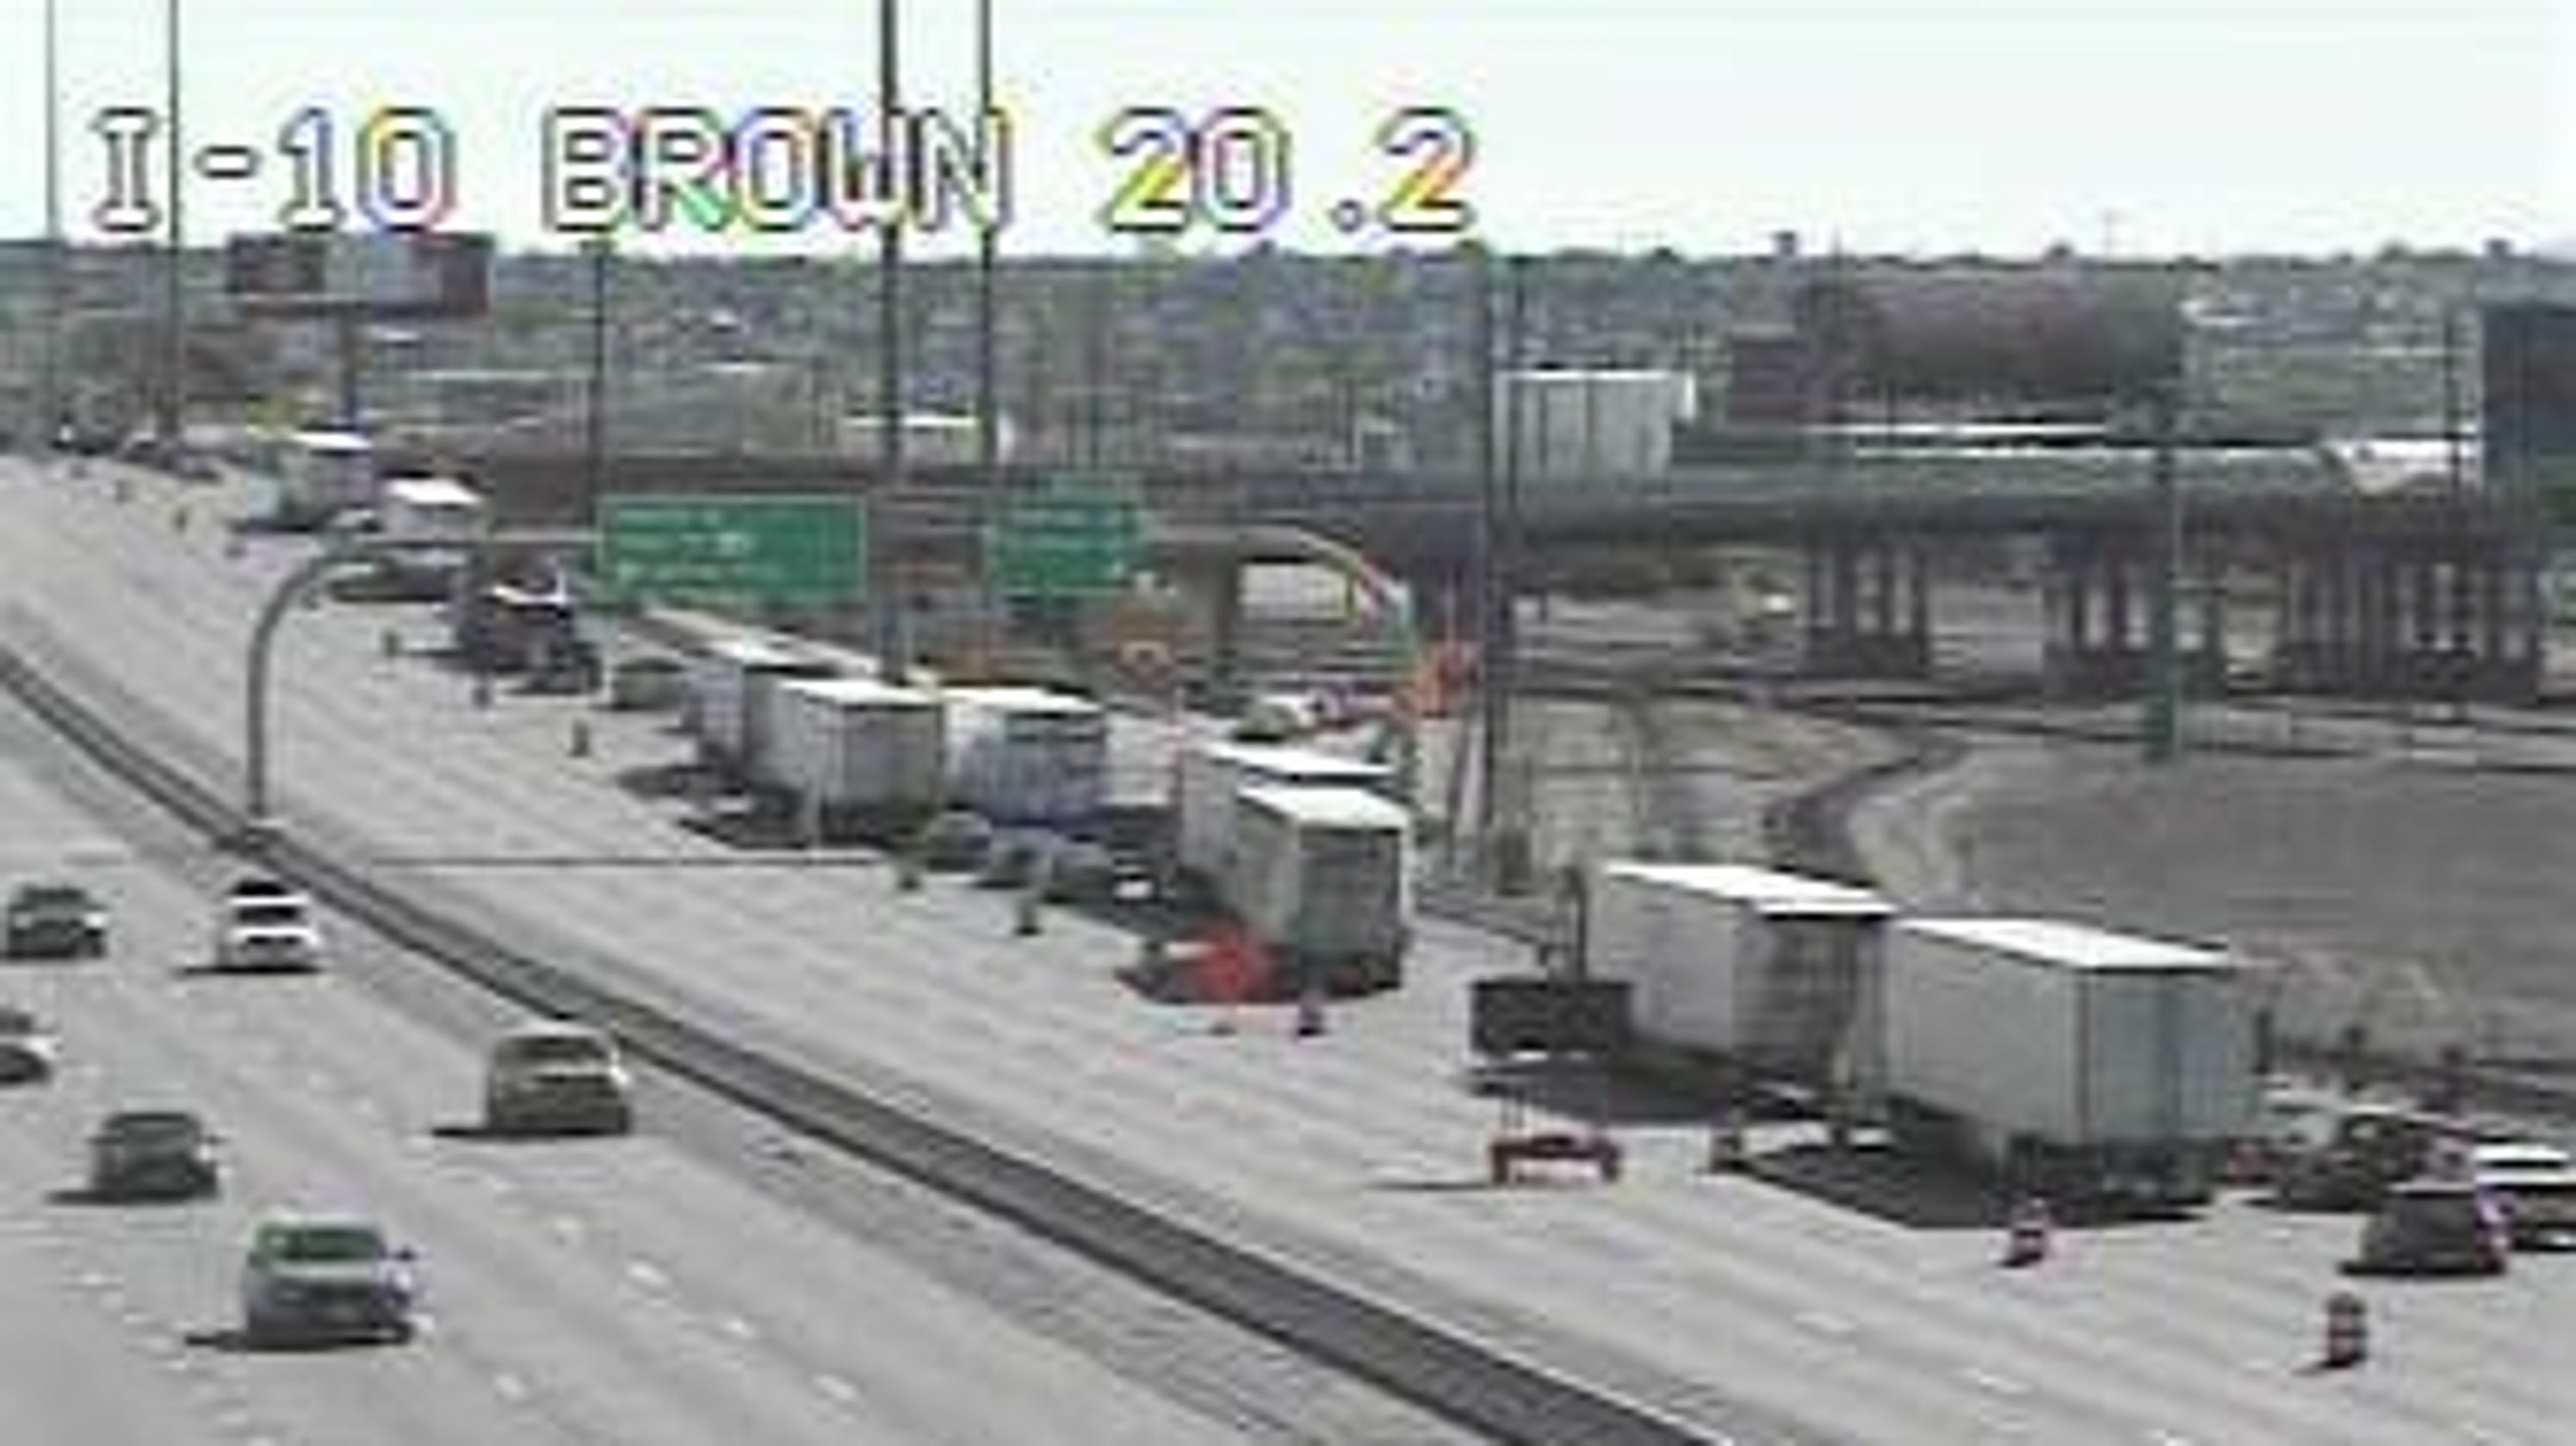 I-10 closed for construction at Spaghetti Bowl in El Paso